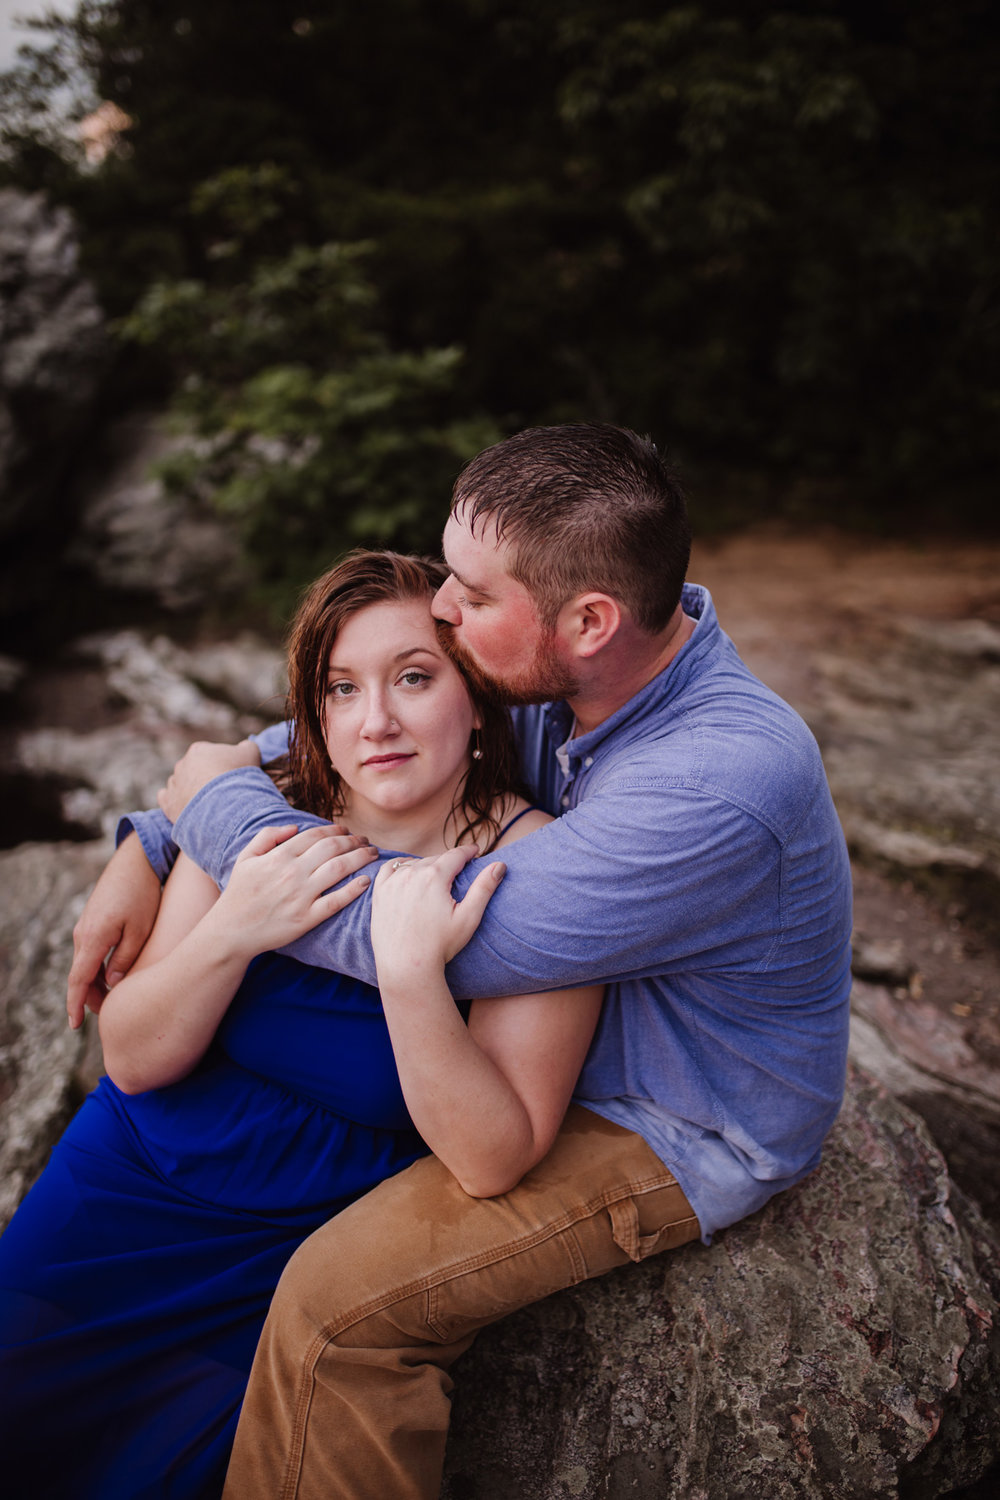 Hanging Rock Engagement Session at Sunset | by Kayli LaFon Photography | Greensboro Winston-Salem NC Photographer